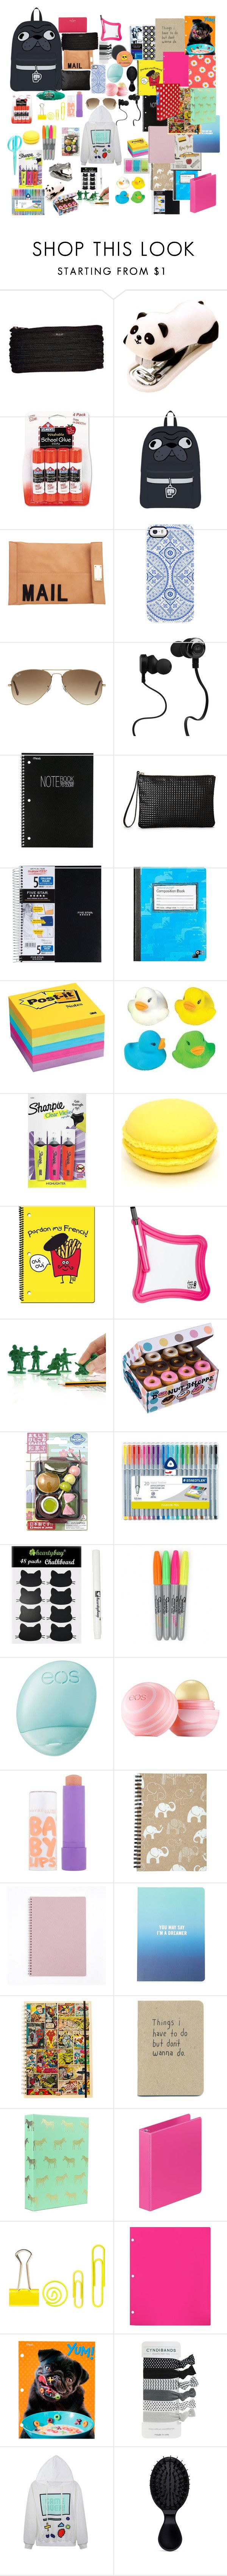 """""""back to school supplies 2"""" by molleighderp ❤ liked on Polyvore featuring Akira, Uncommon, Ray-Ban, Monster, Mead, Post-It, Target, C.R. Gibson, Mustard and Eos"""